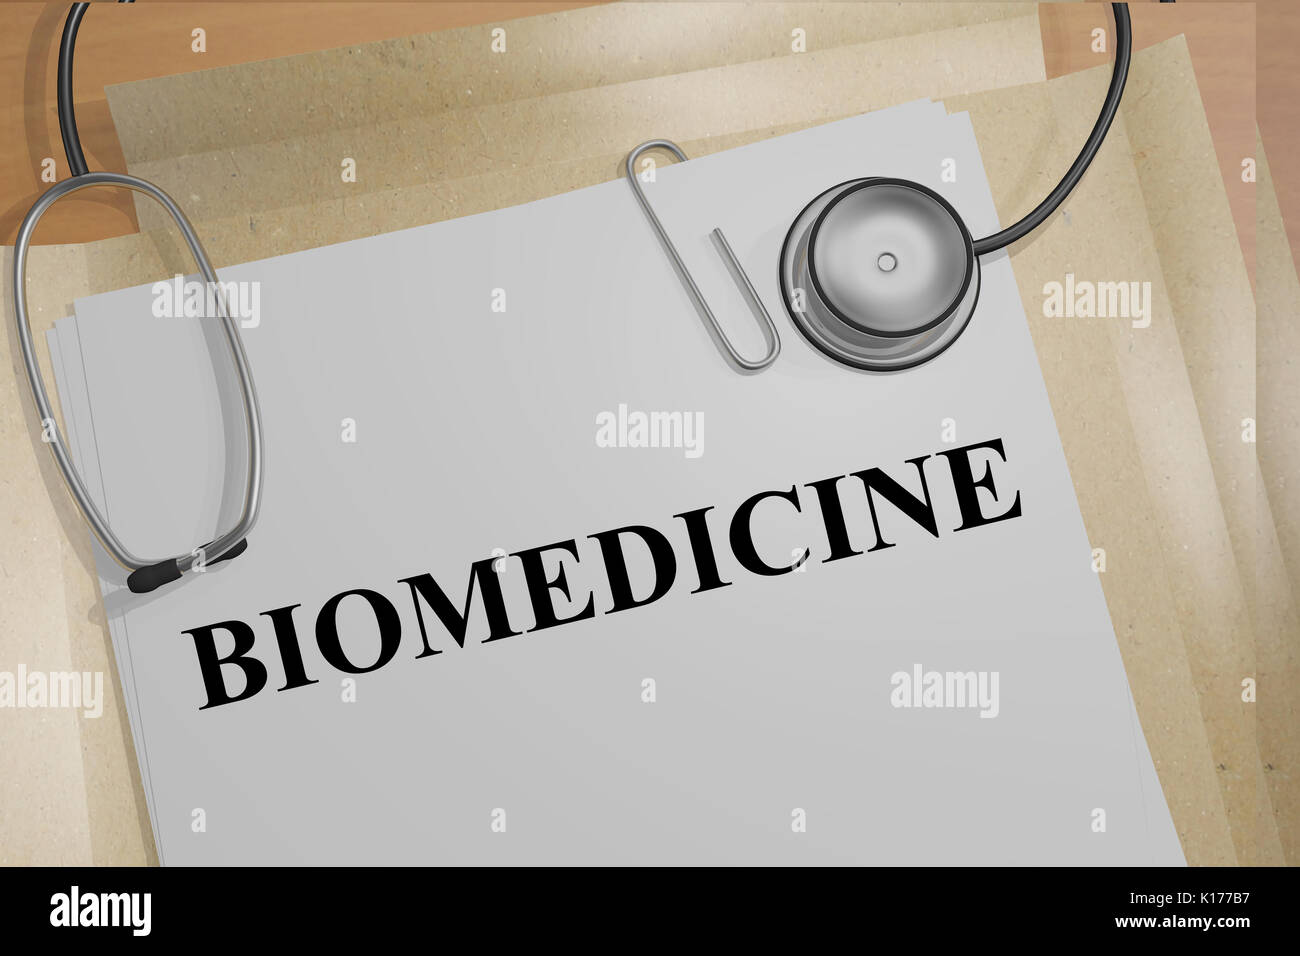 3D illustration of 'BIOMEDICINE' title on medical documents. Medical concept. - Stock Image